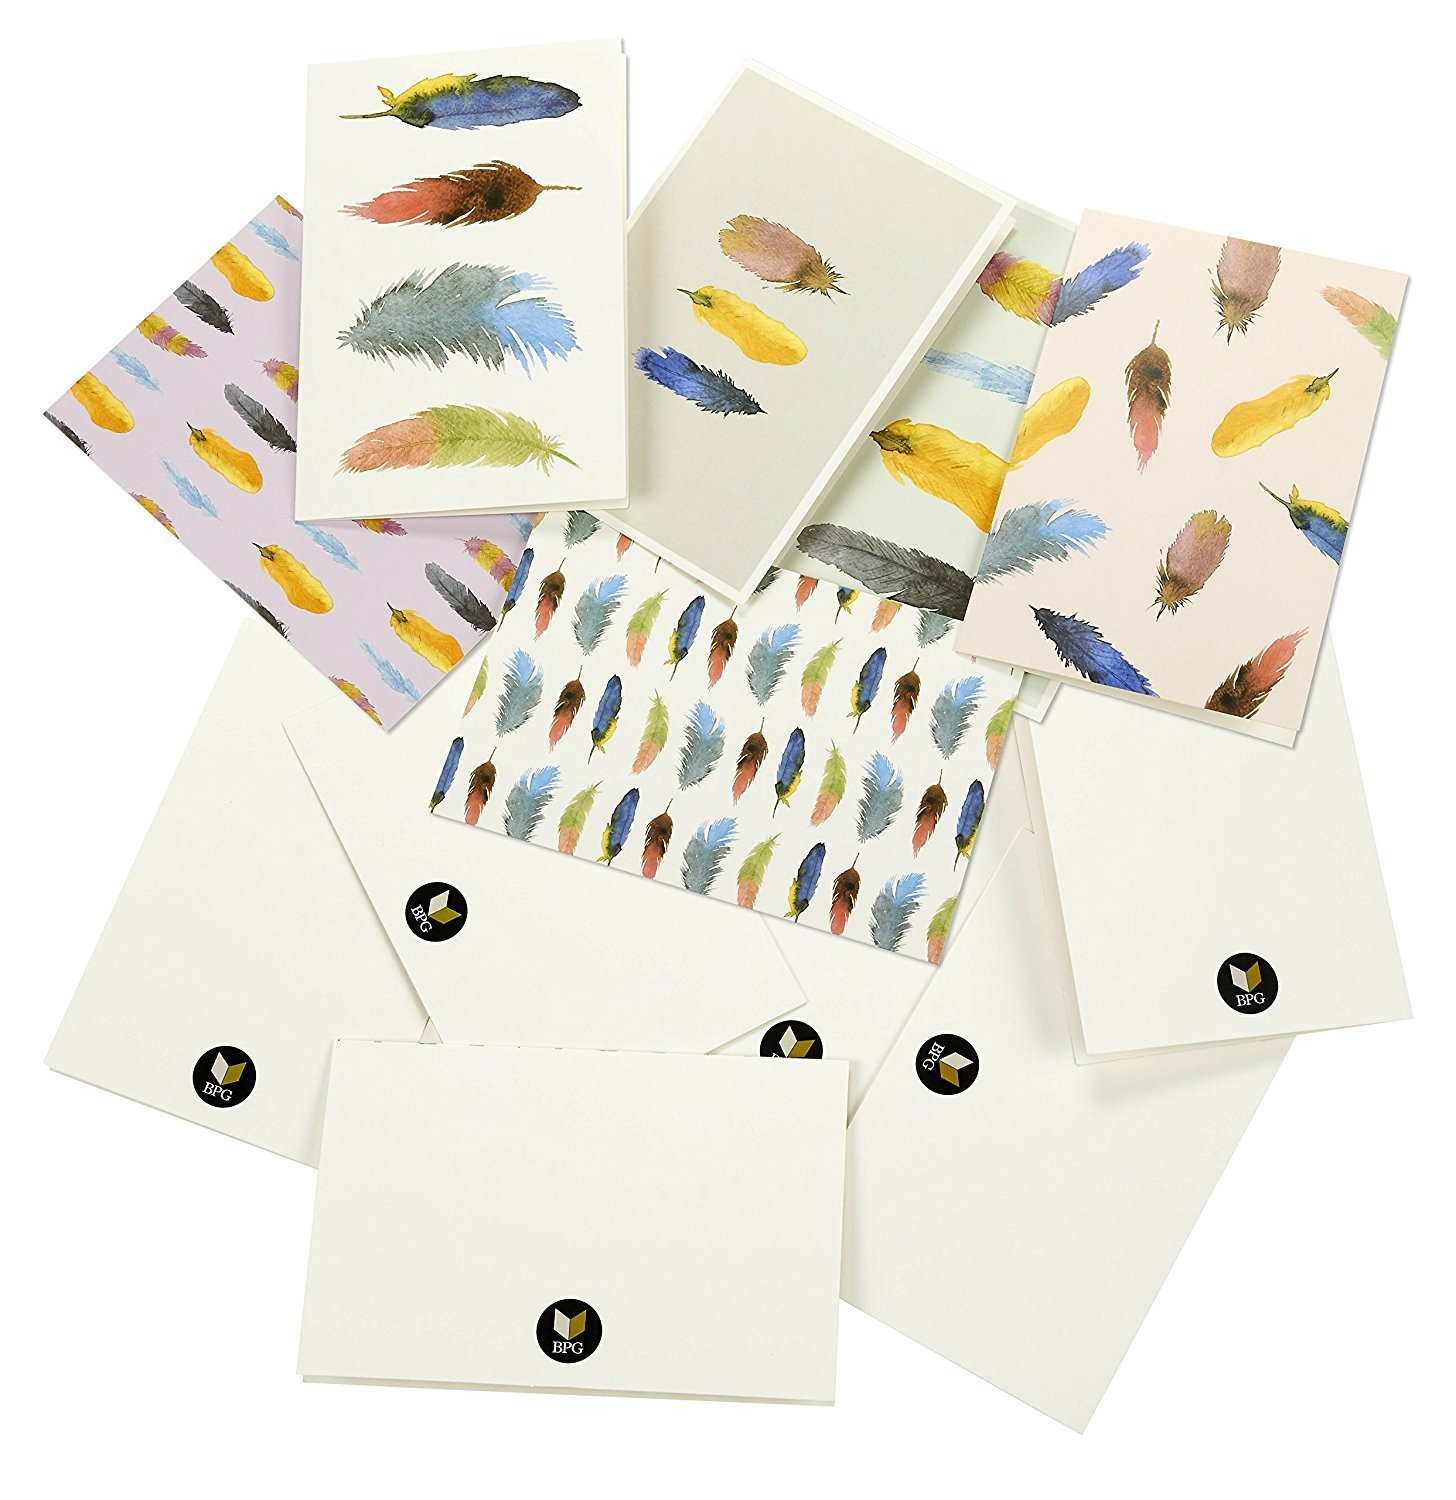 All Occasion Assorted Note Cards Greeting Card Bulk Box Set - Colorful Watercolor Designs